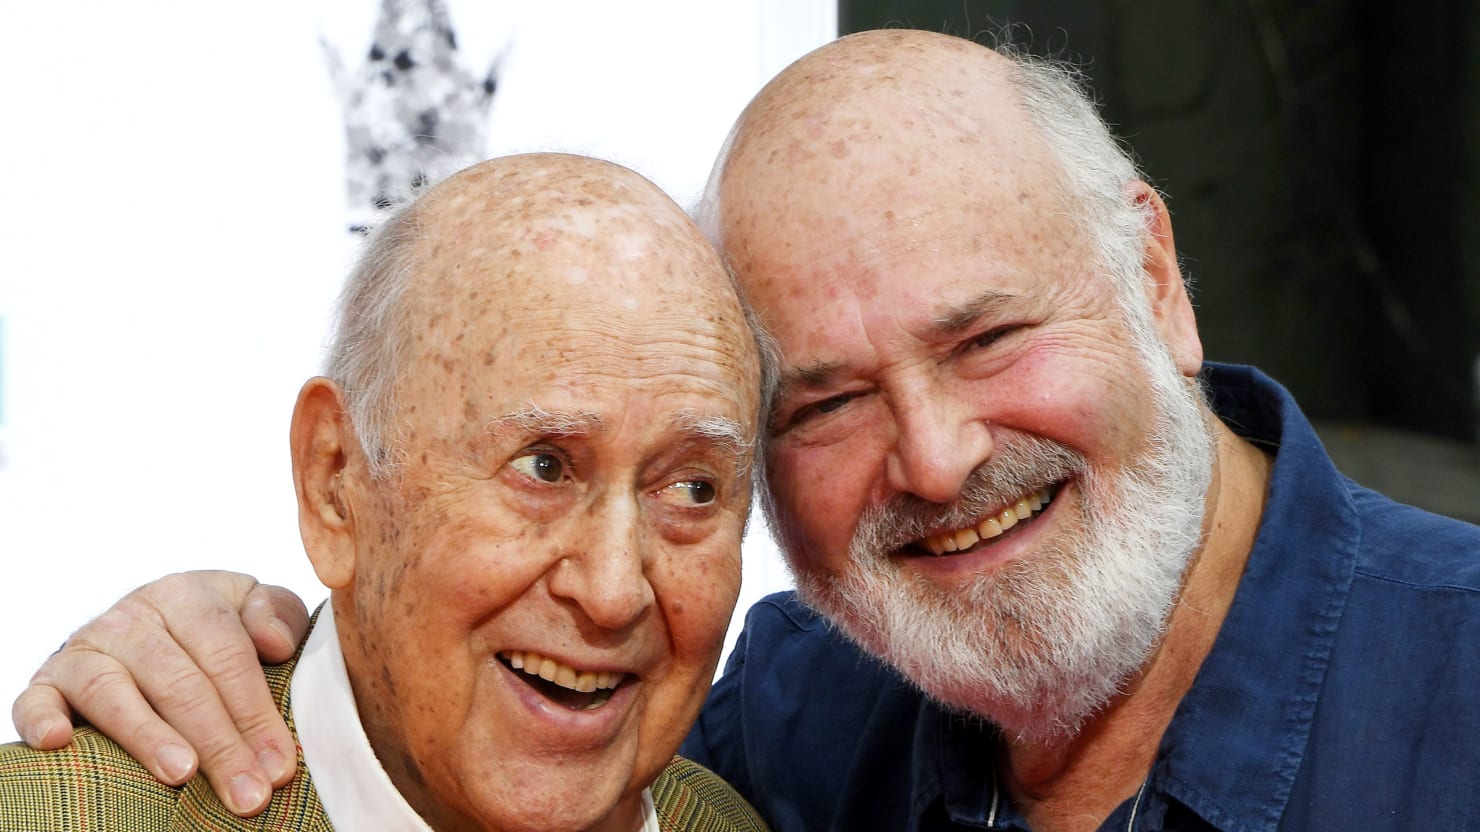 rob reiner on his idol carl reiner and the tragedy of donald trump